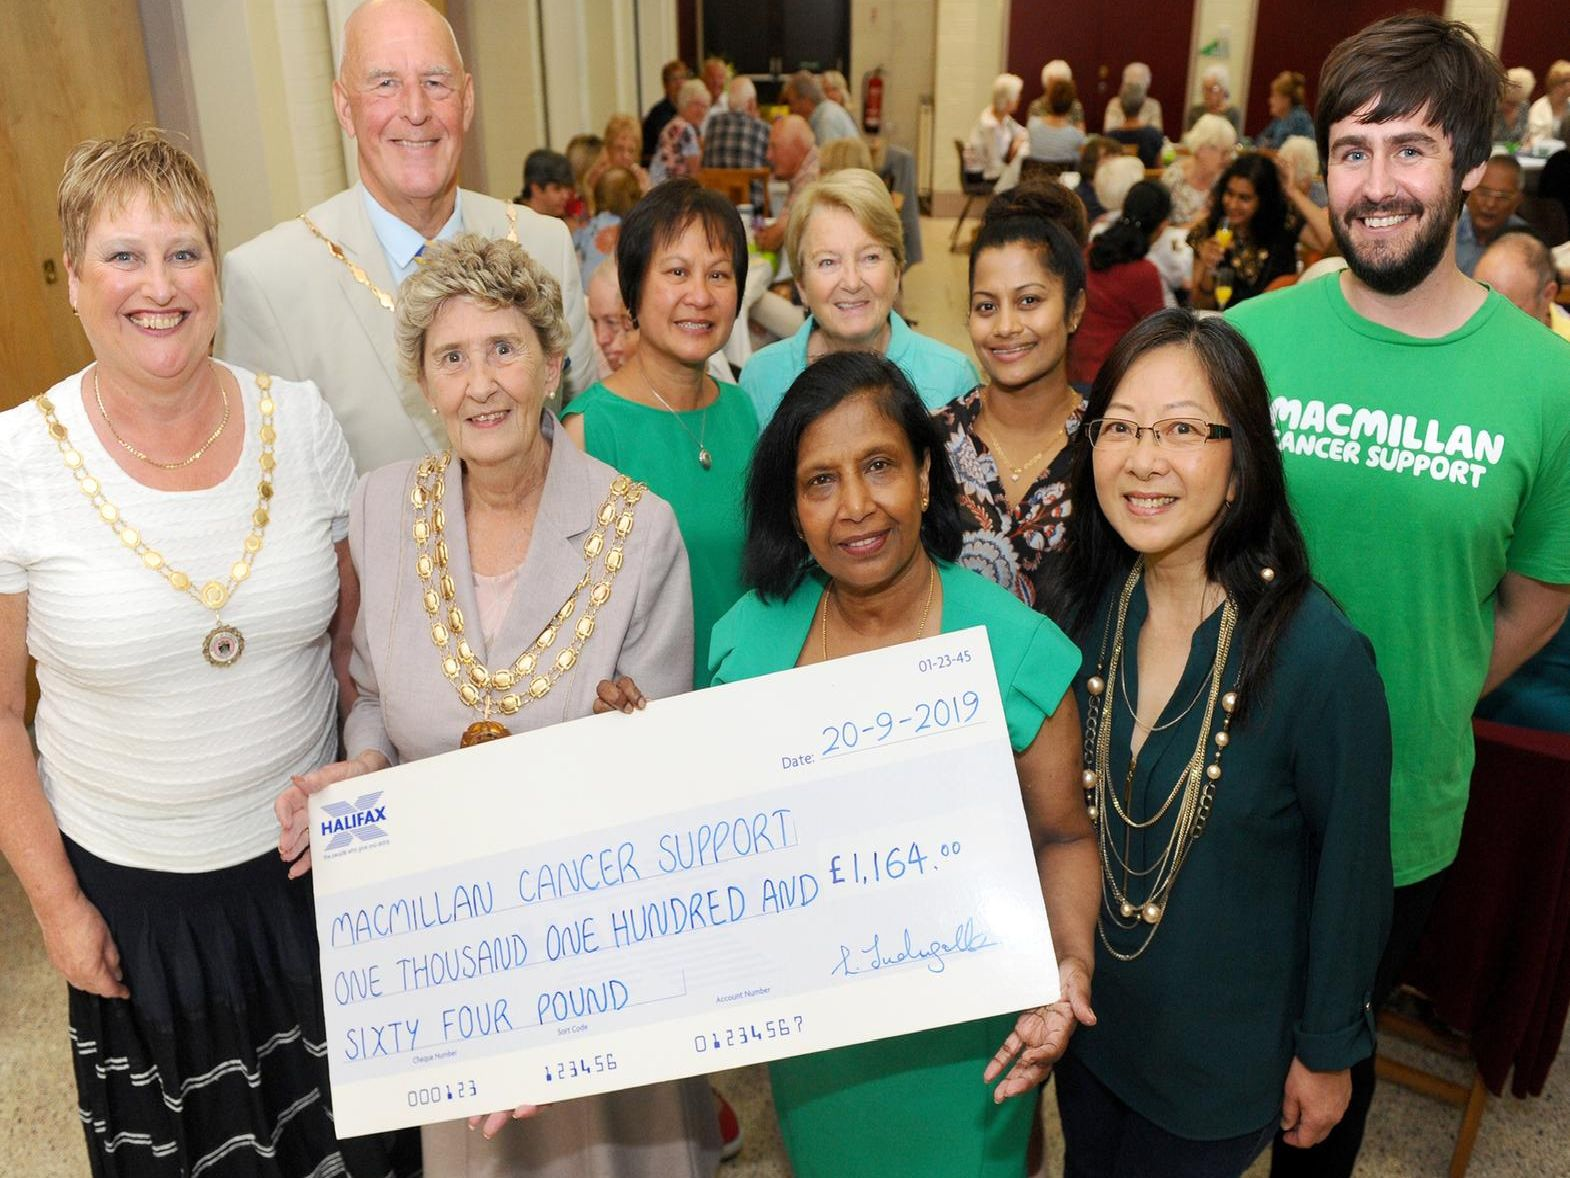 A 'Grand Tea Party' took place inside St Philip Howard church hall in Fareham, on Friday, September 20, as part of Macmillan Cancer Support's annual tea party campaign. 'Pictured is: (back l-r) Deputy Mayor of Fareham Mike Ford, Mary May, Liz Wiltshire, Anusha Thilakarathna and Ryan Howarth, fundraising manager for Macmillan Cancer Support with (front l-r) Anne Ford, deputy Mayoress of Fareham, the Mayor of Fareham Pamela Bryant, Lorinda Tudugalle, organiser and Jenny Wong.'Picture: Sarah Standing (200919-7059)